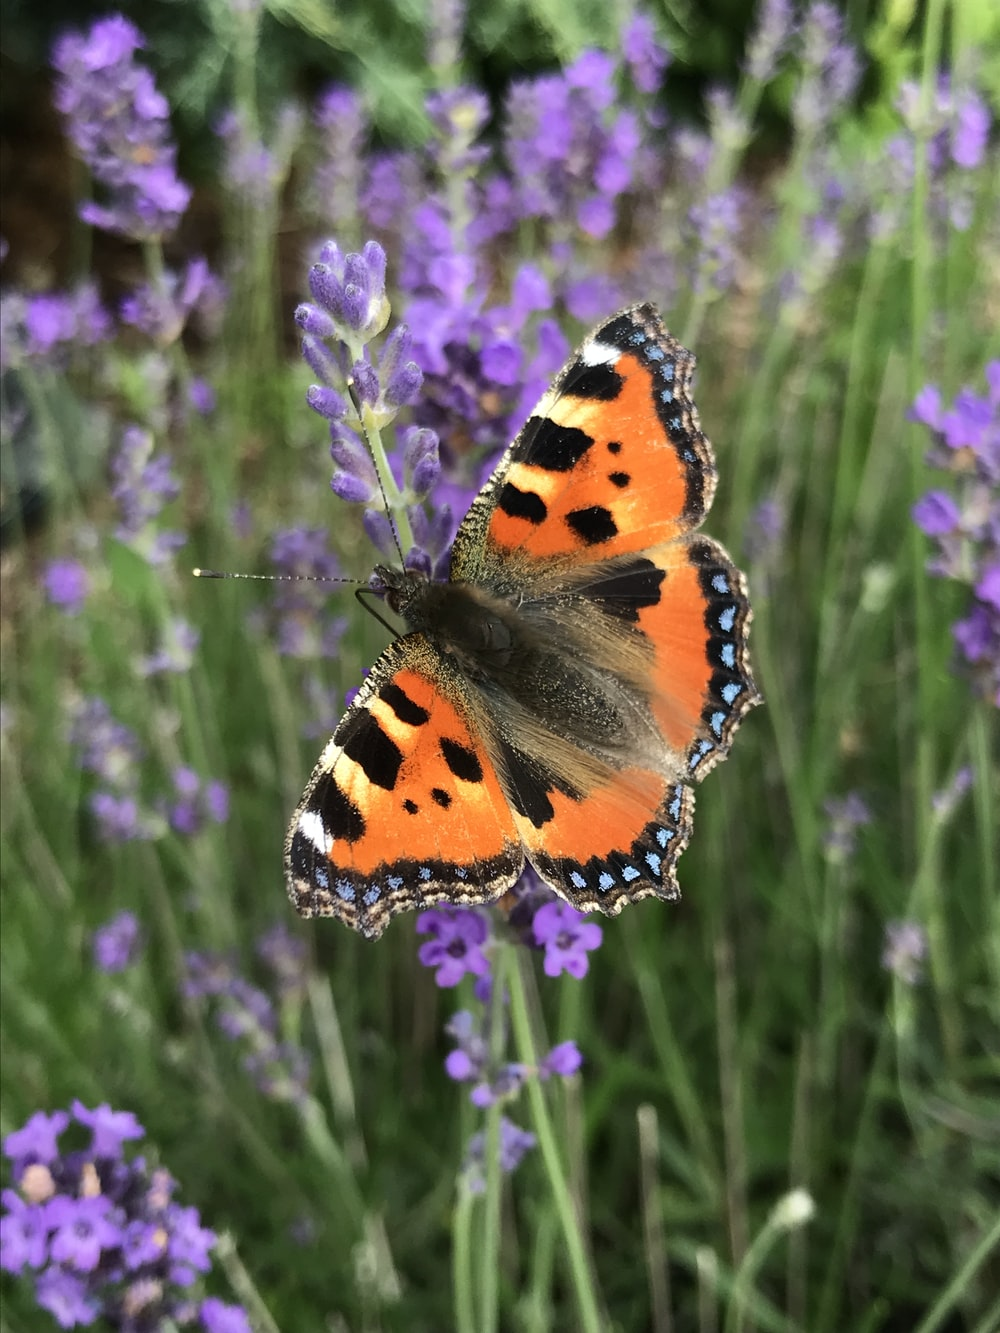 orange black and white butterfly perched on purple flower